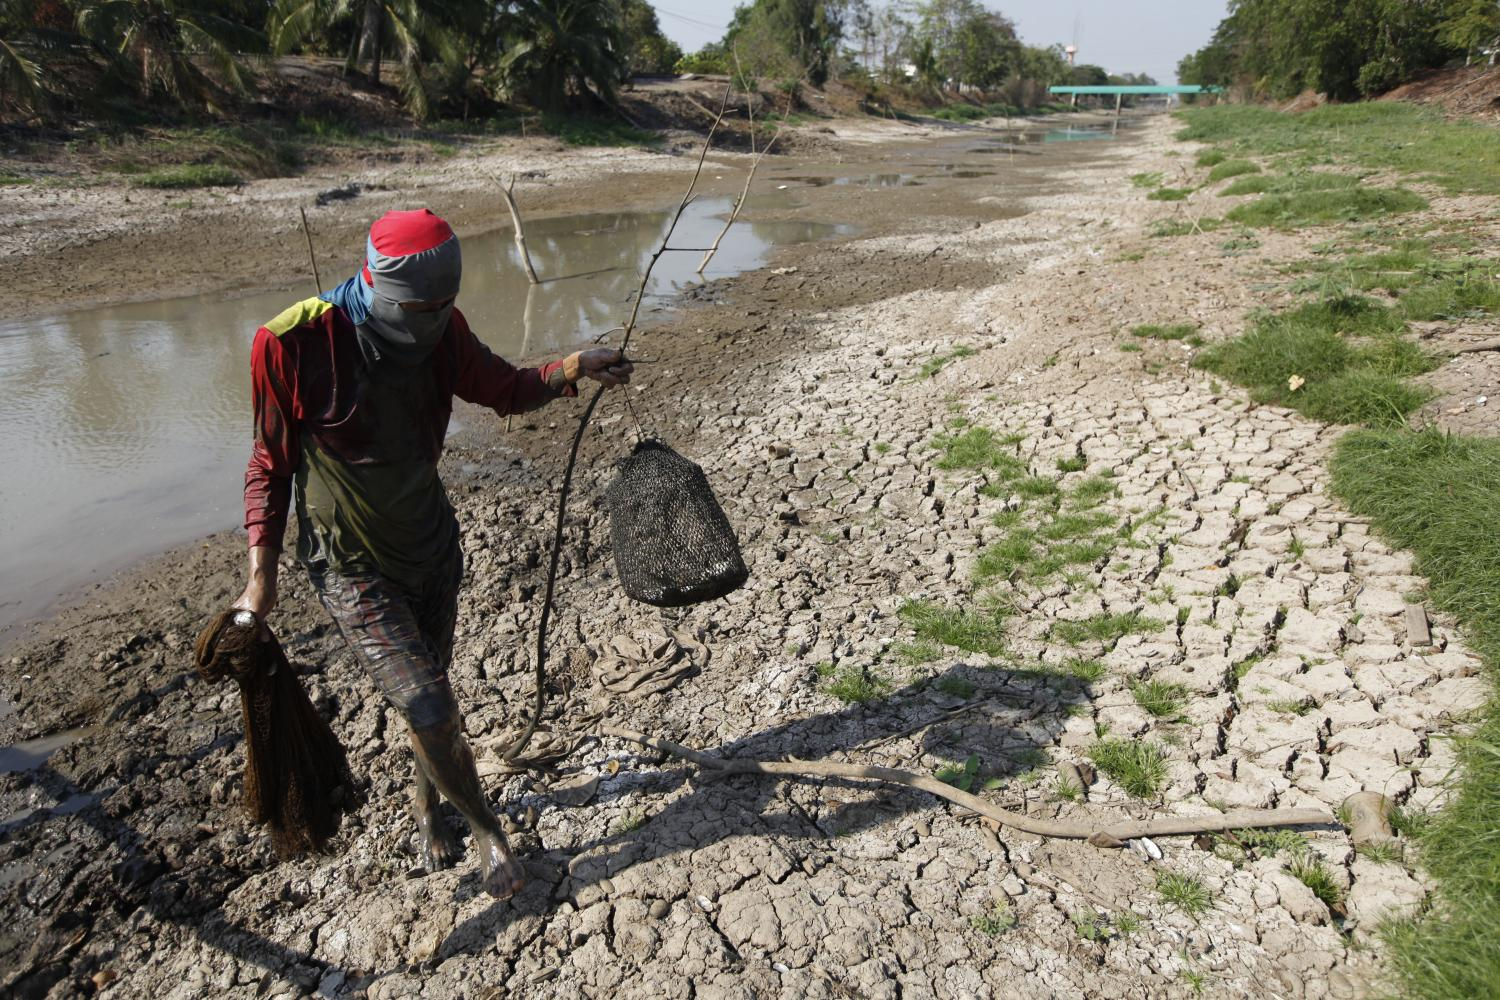 A man carries a fish he caught in a parched canal in Pathum Thani. Drought has already hit farmers in Thanyaburi, Klong Luang and Nong Sua districts of the province just north of Bangkok.(Photo by Wichan Charoenkiatpakul)